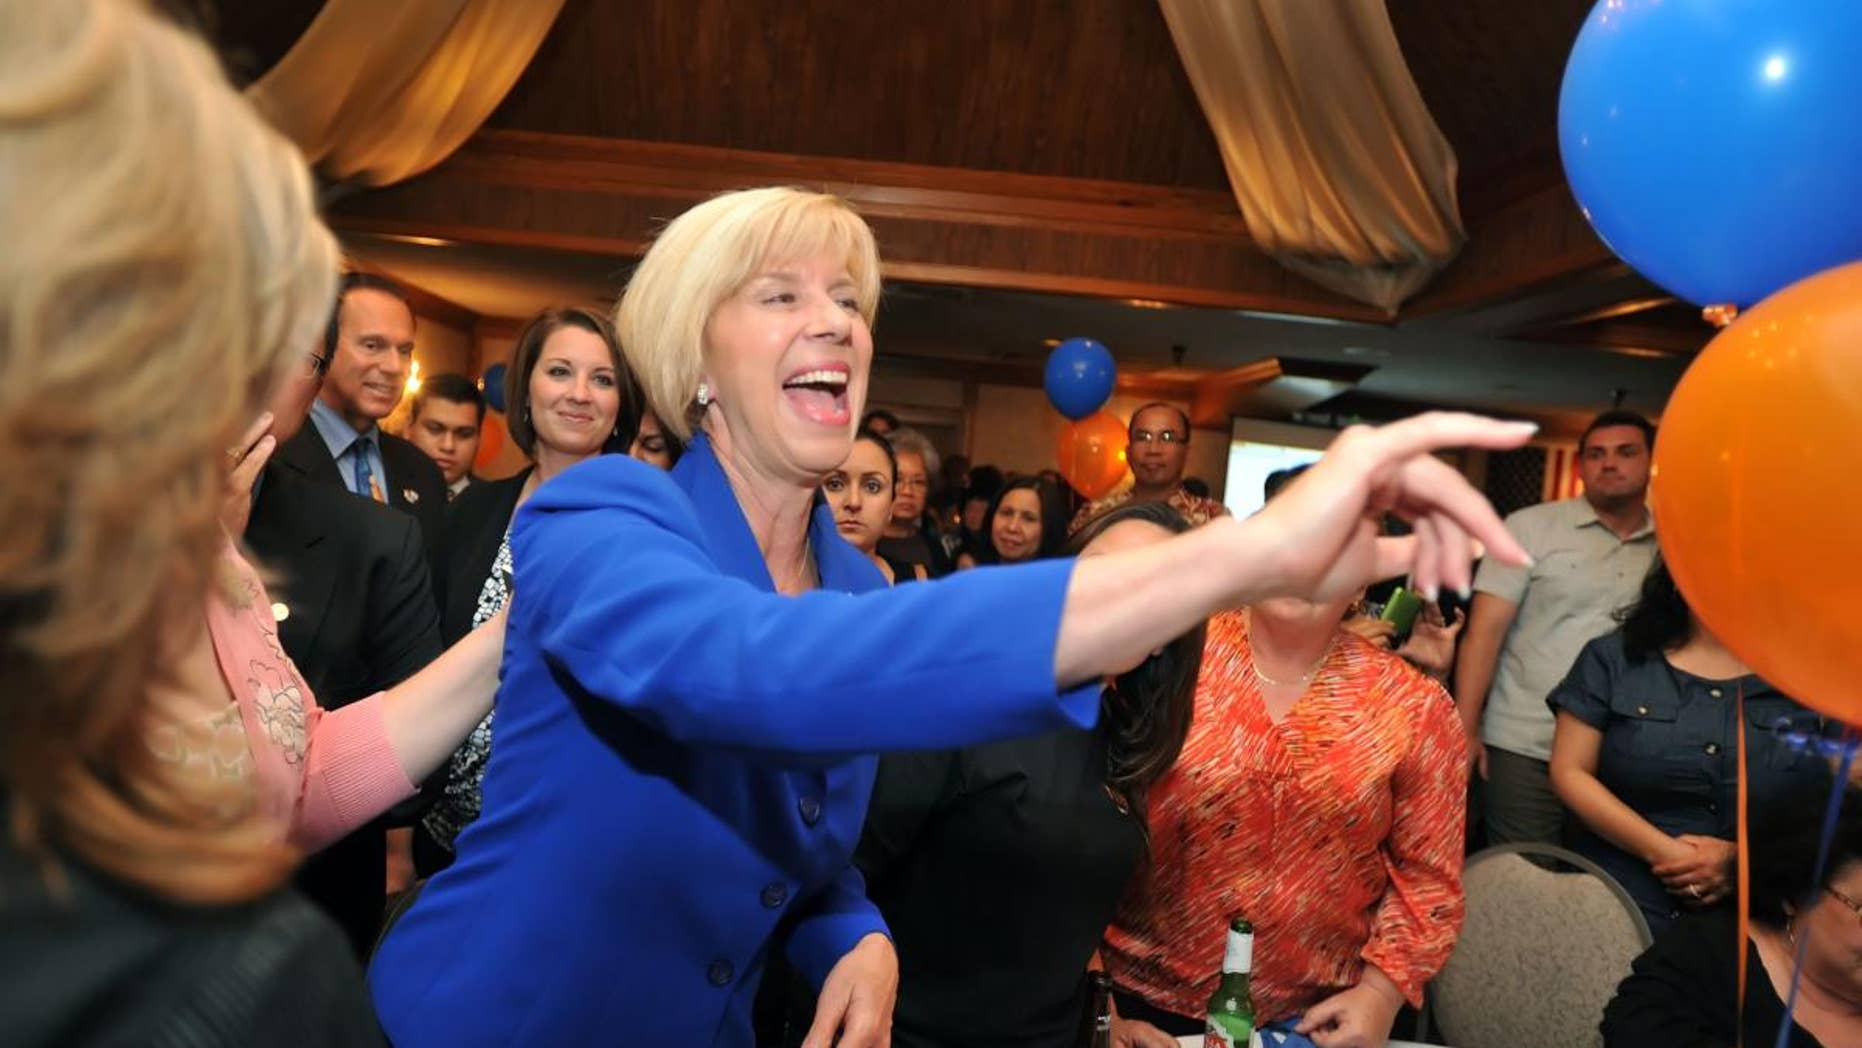 Los Angeles City councilwoman Janice Hahn, running for Congressional District 36th, makes her way through the crowd of supporters Tuesday night July 12, 2011 at her election party. (AP Photo/Sean Hiller - Daily Breeze)